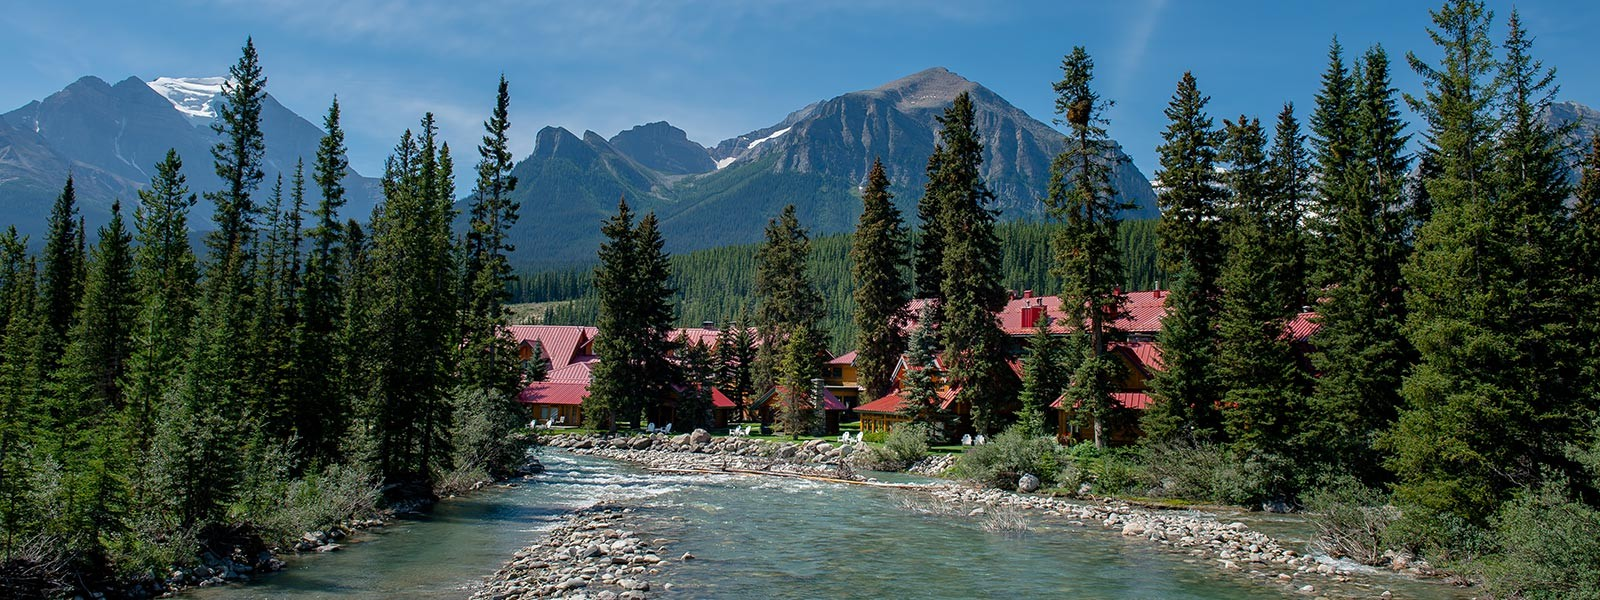 Banff National Park Hotel Location The Post Hotel